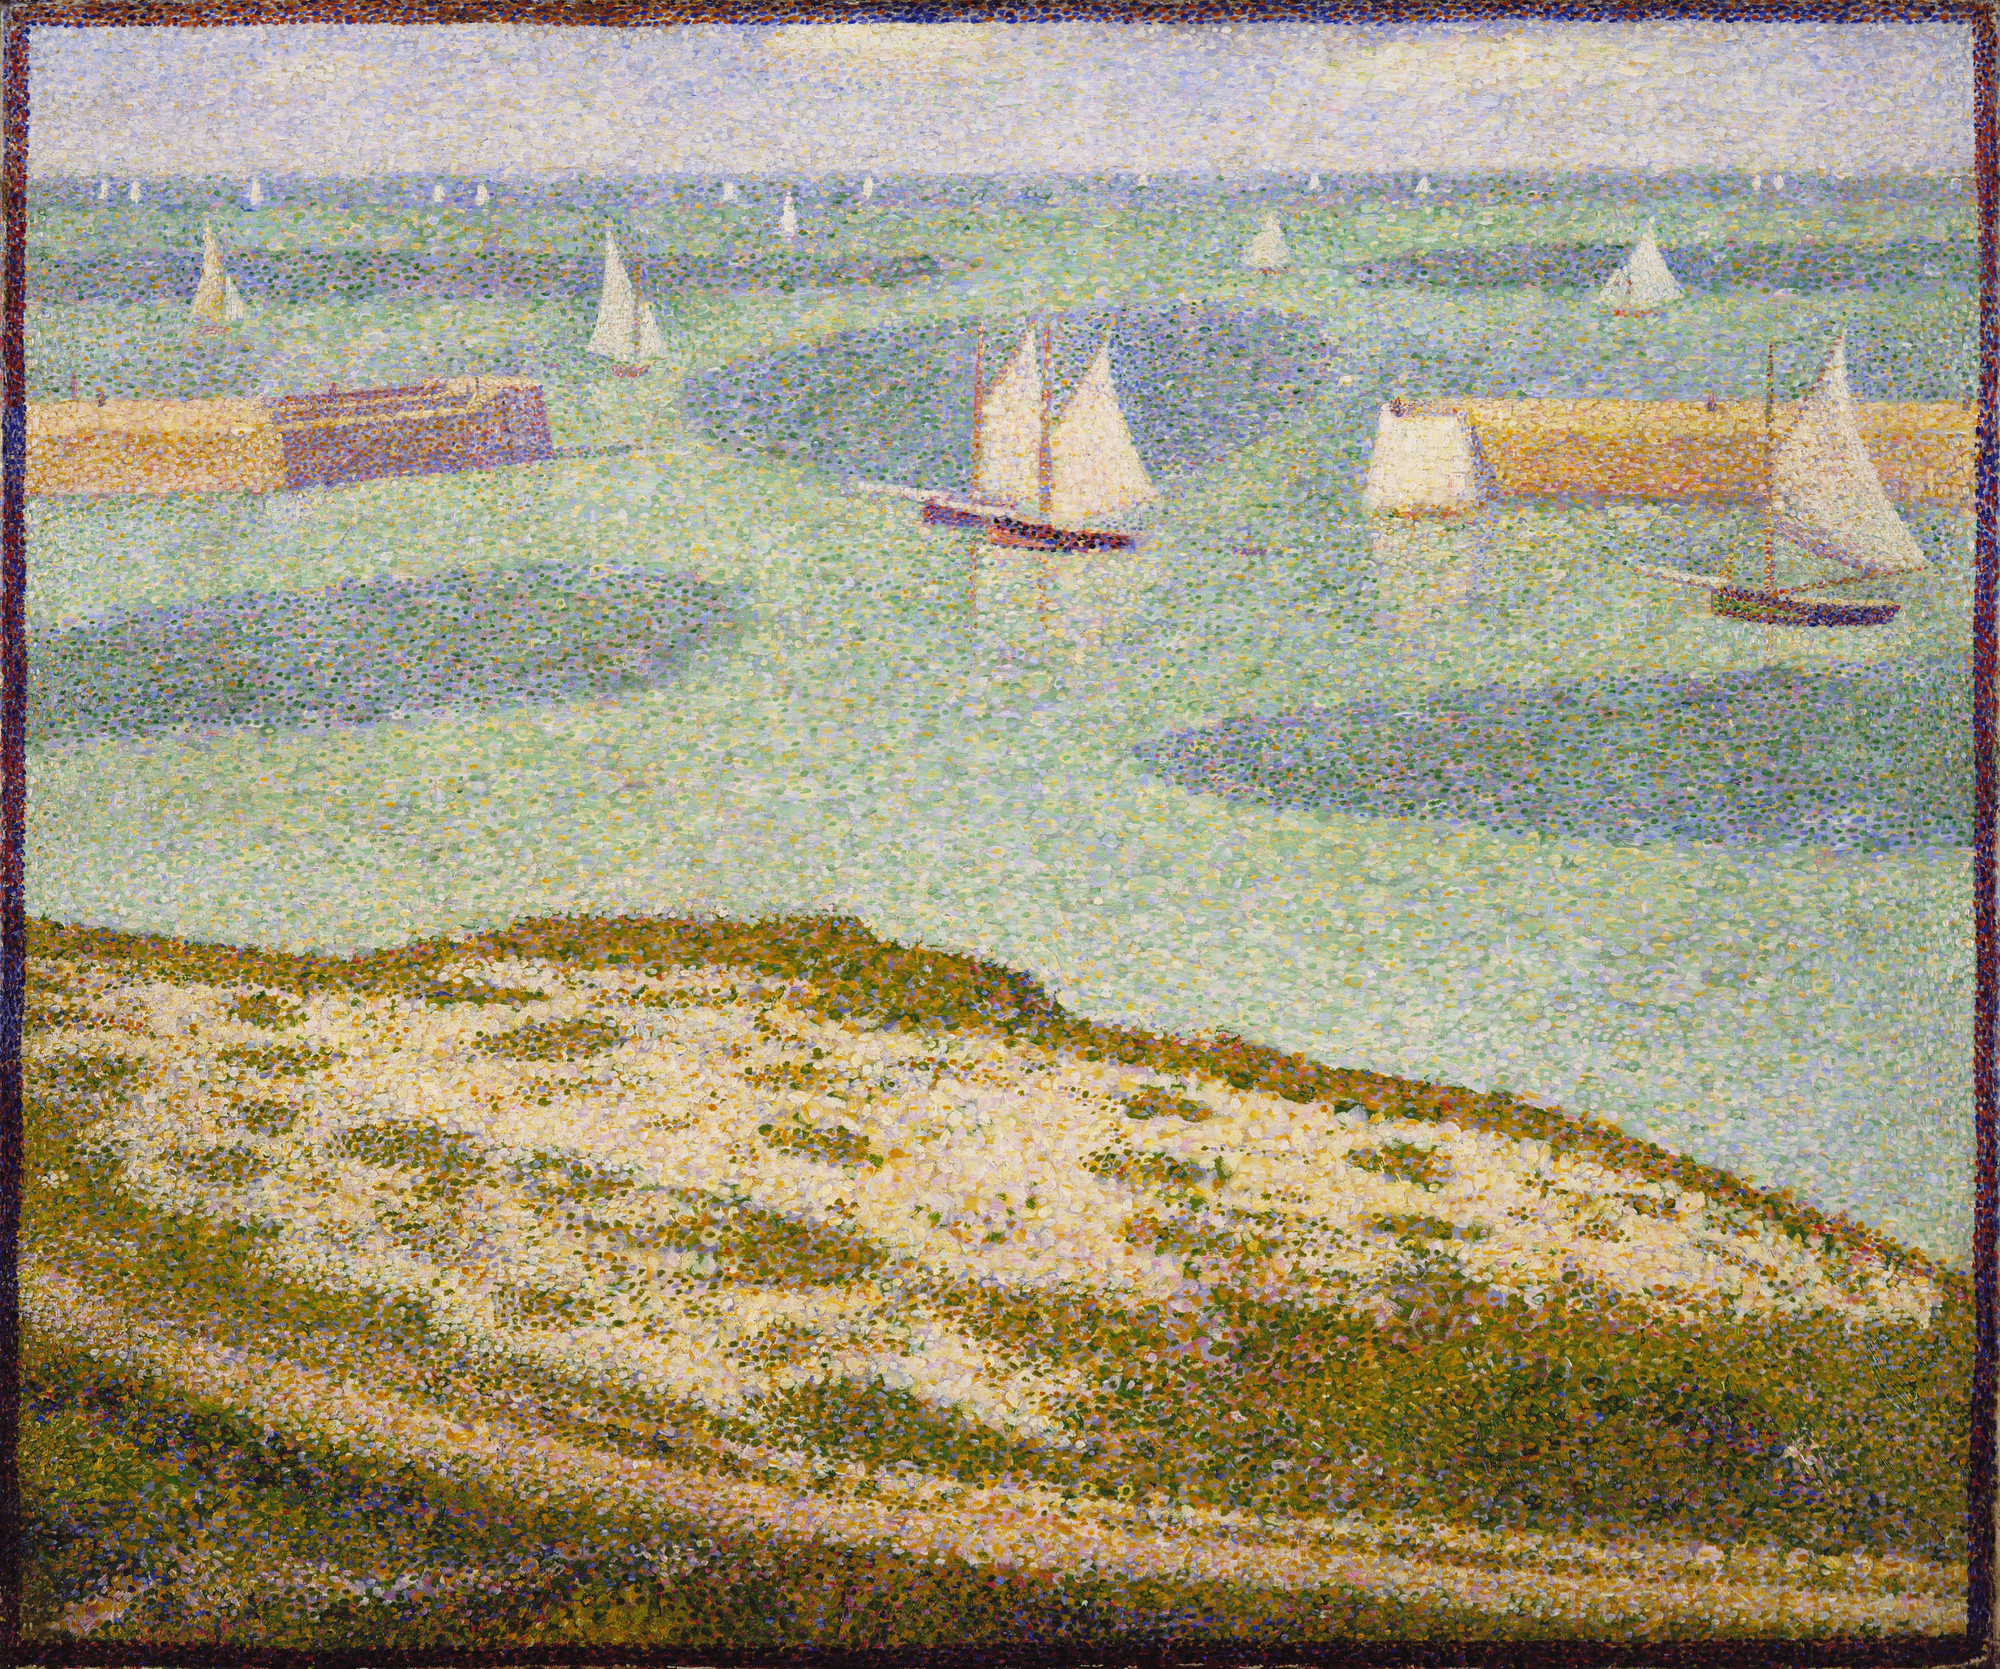 GeorgesPierre Seurat PortenBessin Entrance To The Harbor - Location port en bessin